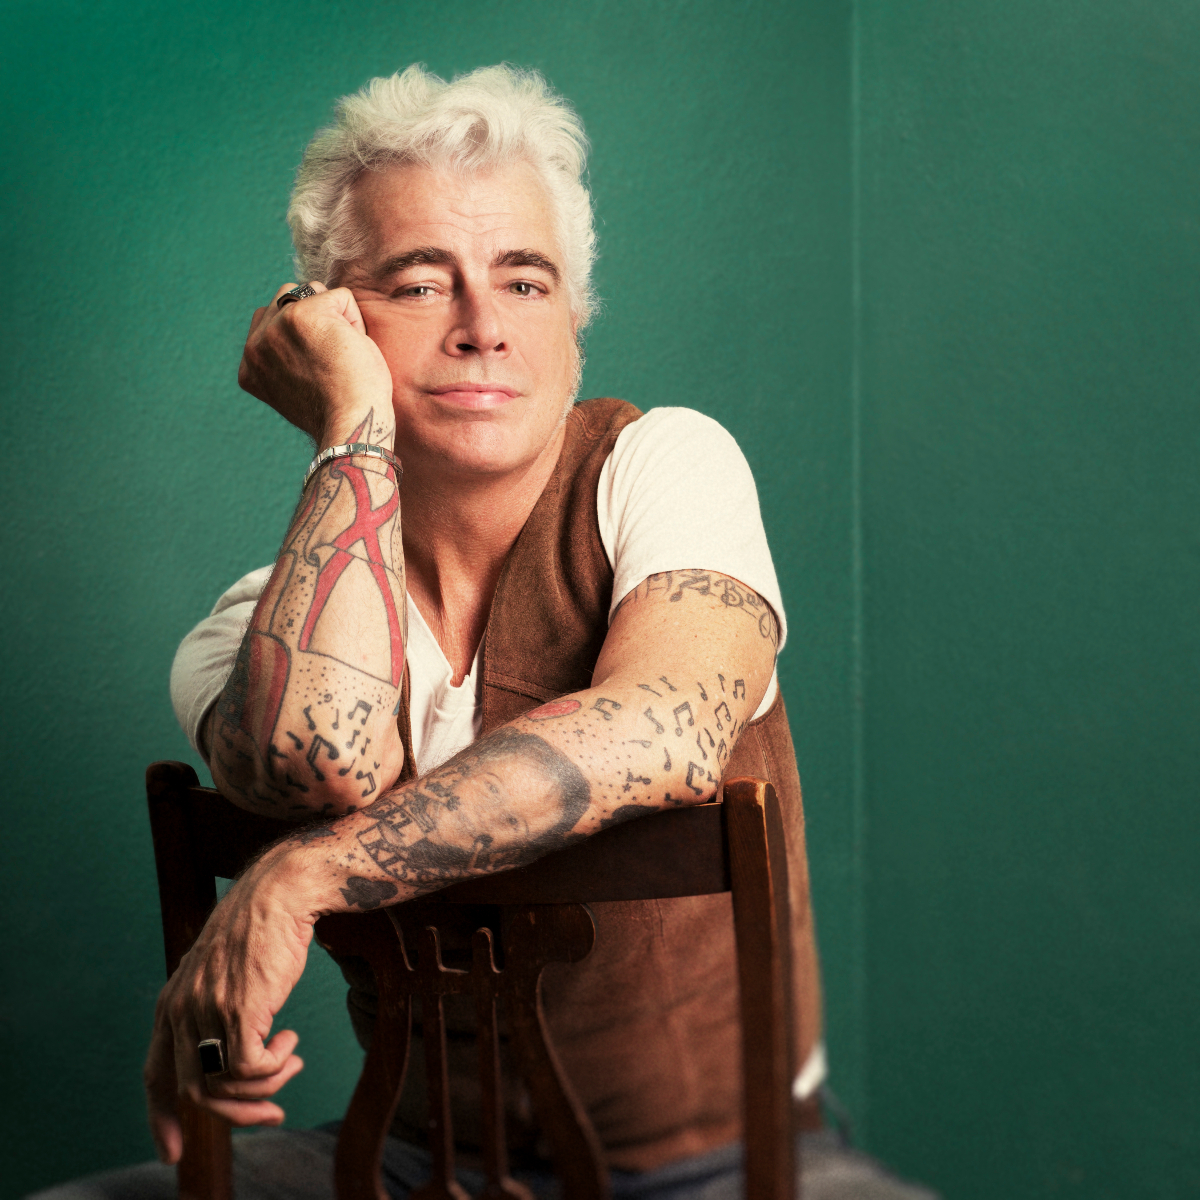 This weekend: Dale Watson in Amsterdam's Paradiso Noord